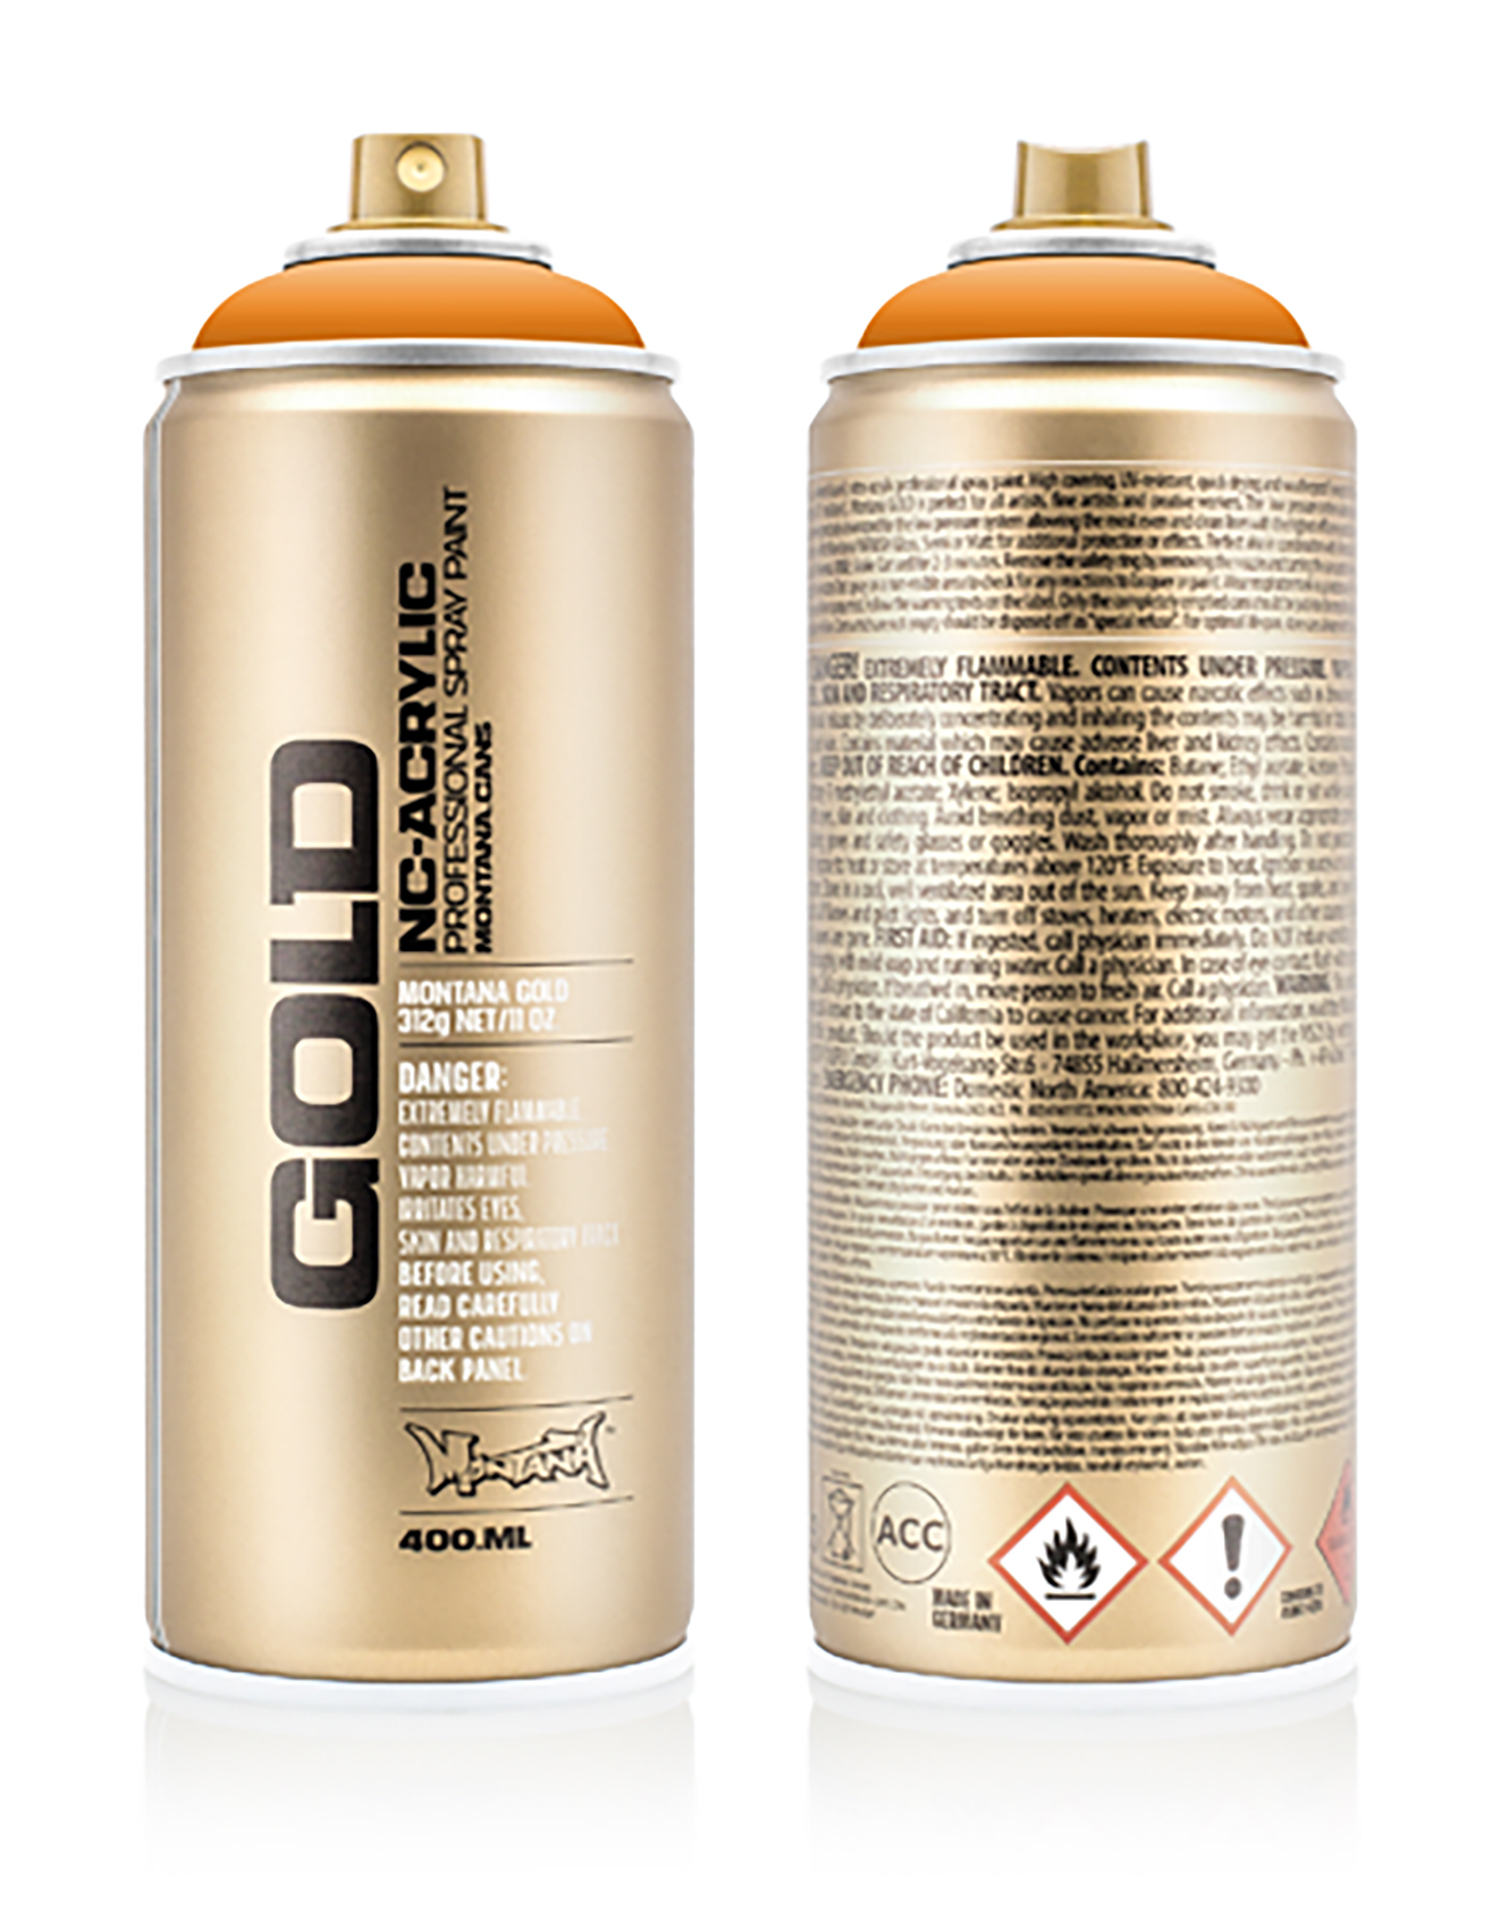 MONTANA-GOLD-SPRAY-400ML-G-2050